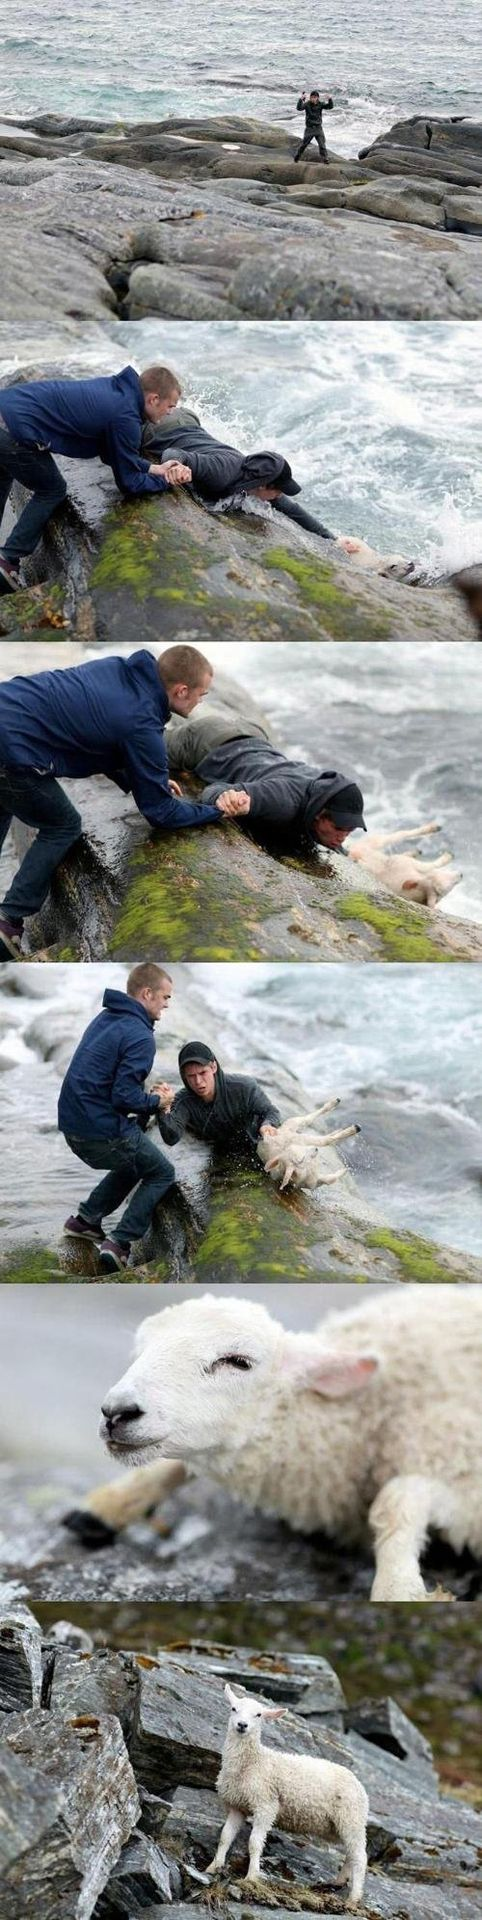 Two Norwegian guys rescuing a sheep from the ocean….: Animal Rescue, Norwegian Guys, Hero, Faith In Humanity Restored, Faith Restored, Awesome People, Animal Stories, Amazing People, Guys Rescuing